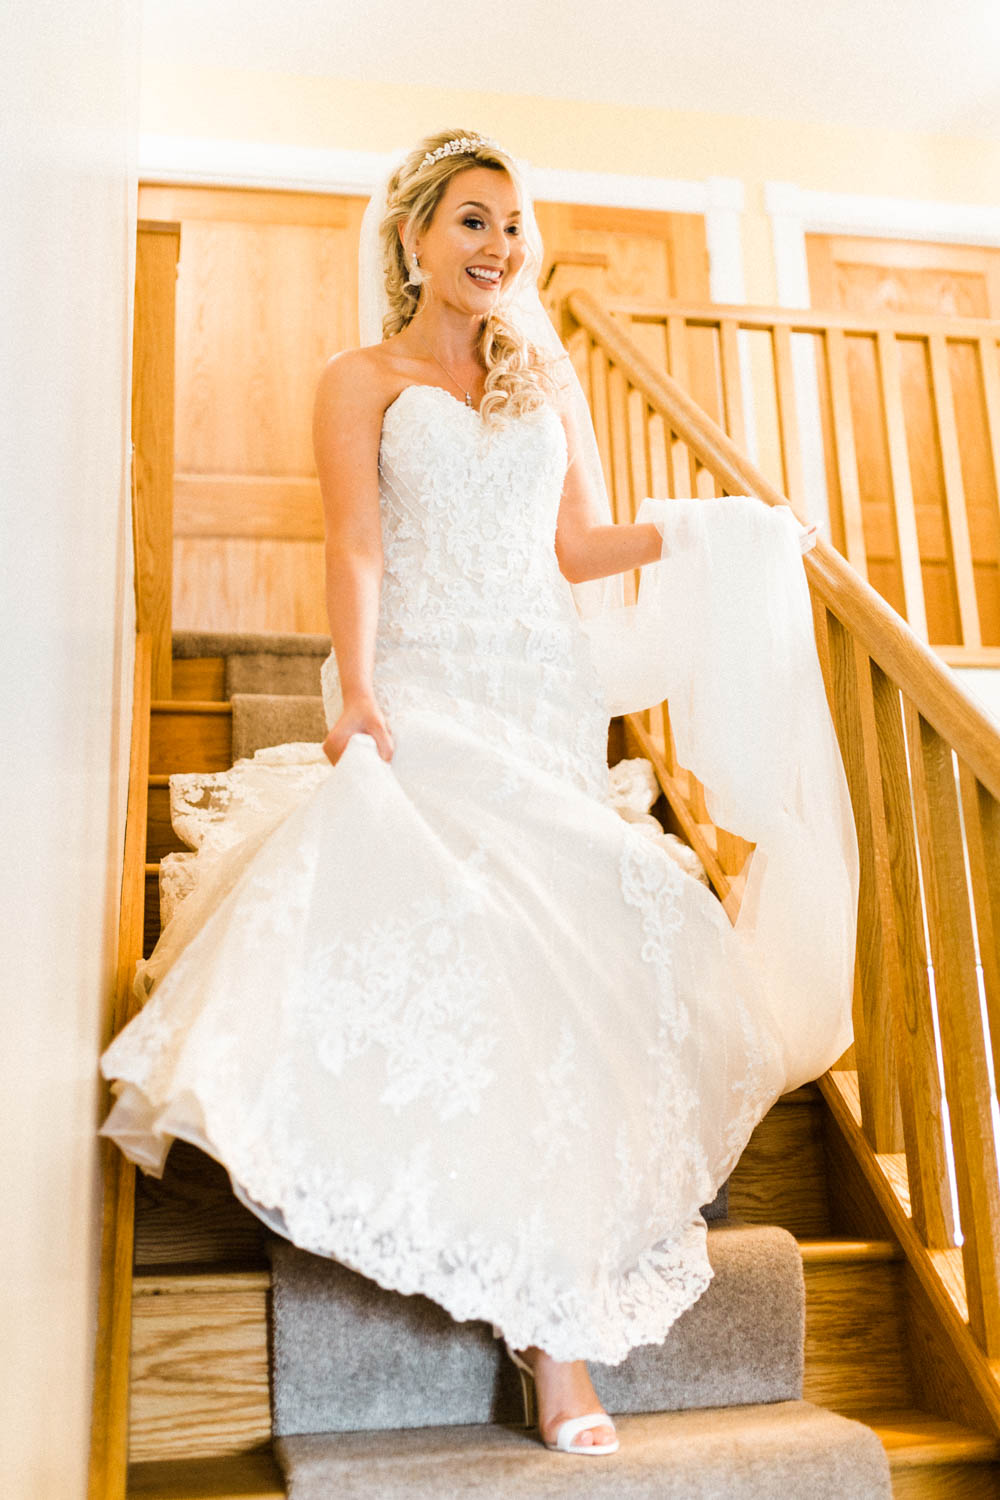 Special-Day-Photography-The-Manor-House-Hotel-Moreton-in-Marsh-Moreton-In-Marsh-Summer-Wedding-The-bride-walking-down-the-stairs-at-her-house.jpg